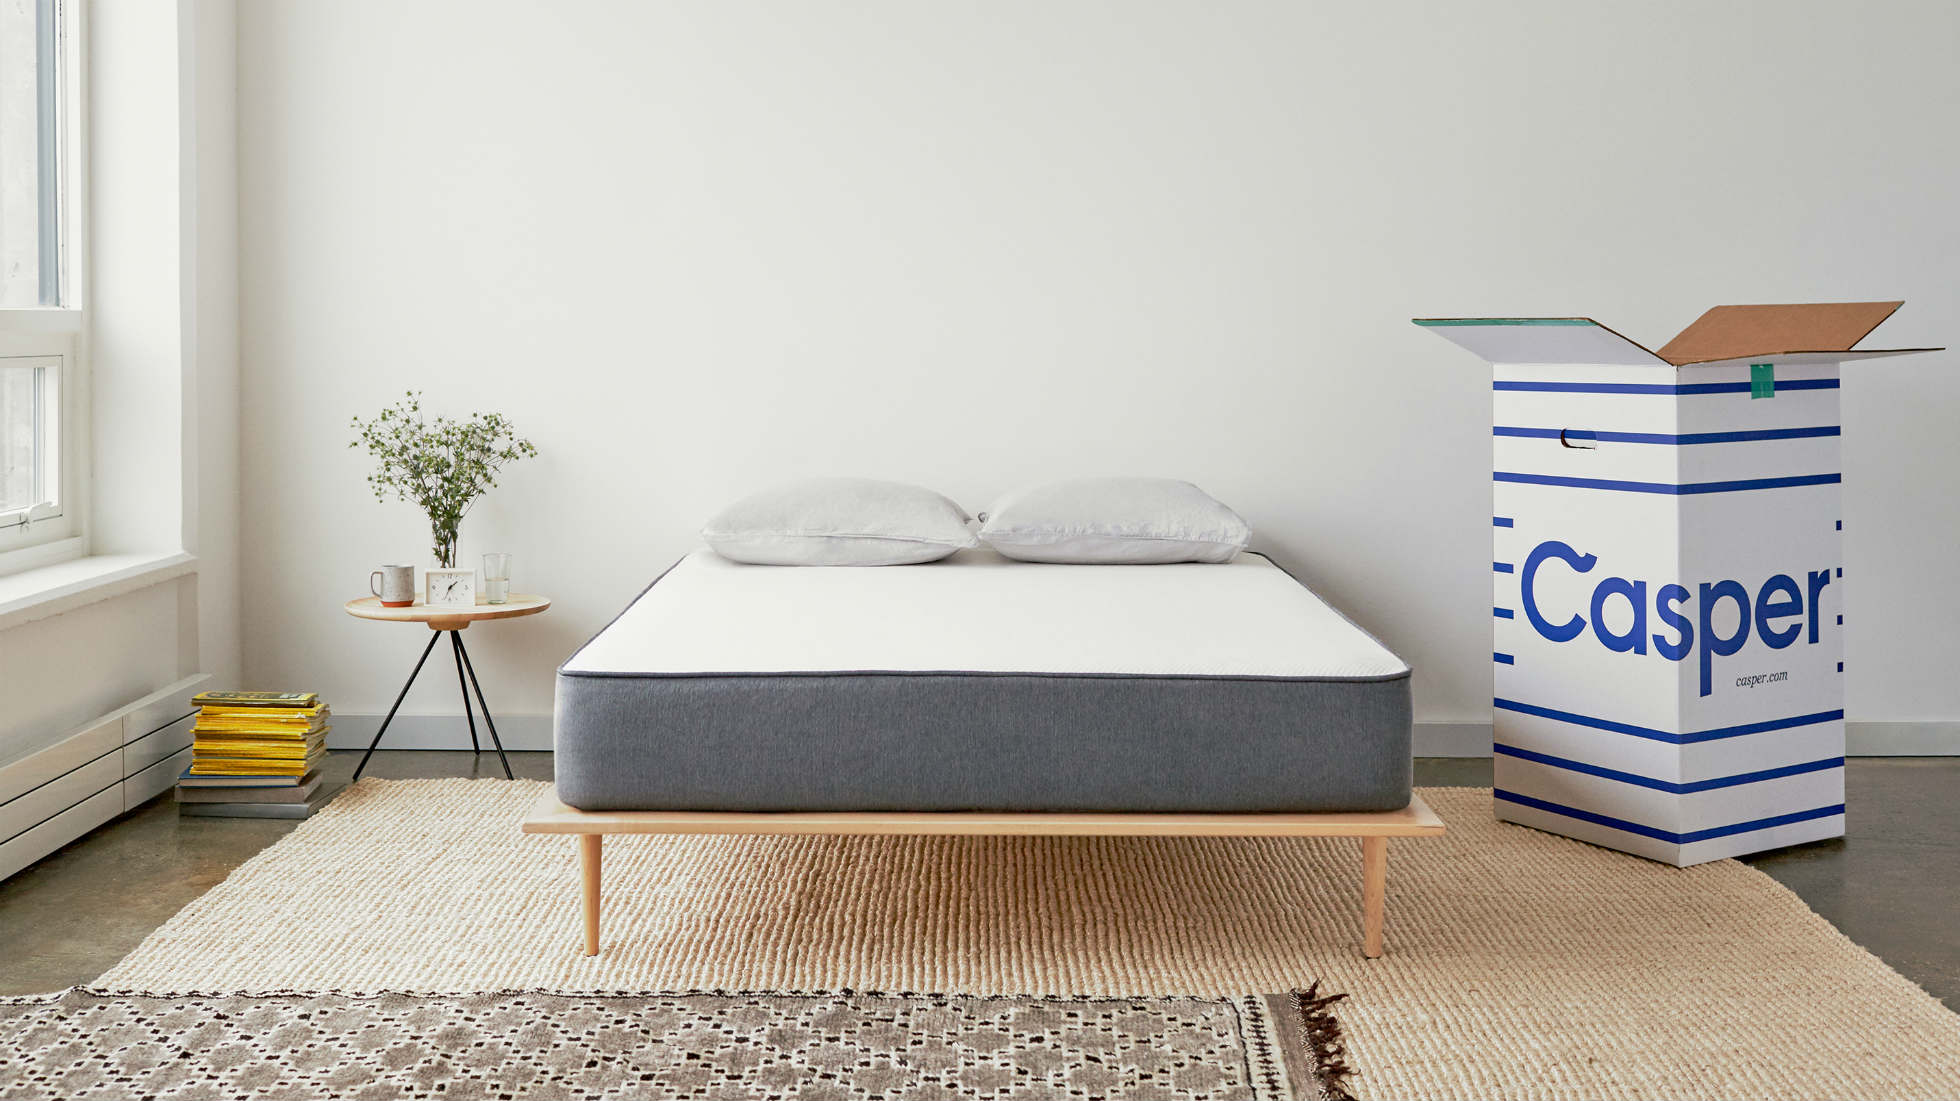 Best mattress 2018: Sleep tight with the best pocket-sprung, memory foam and budget mattresses you can buy